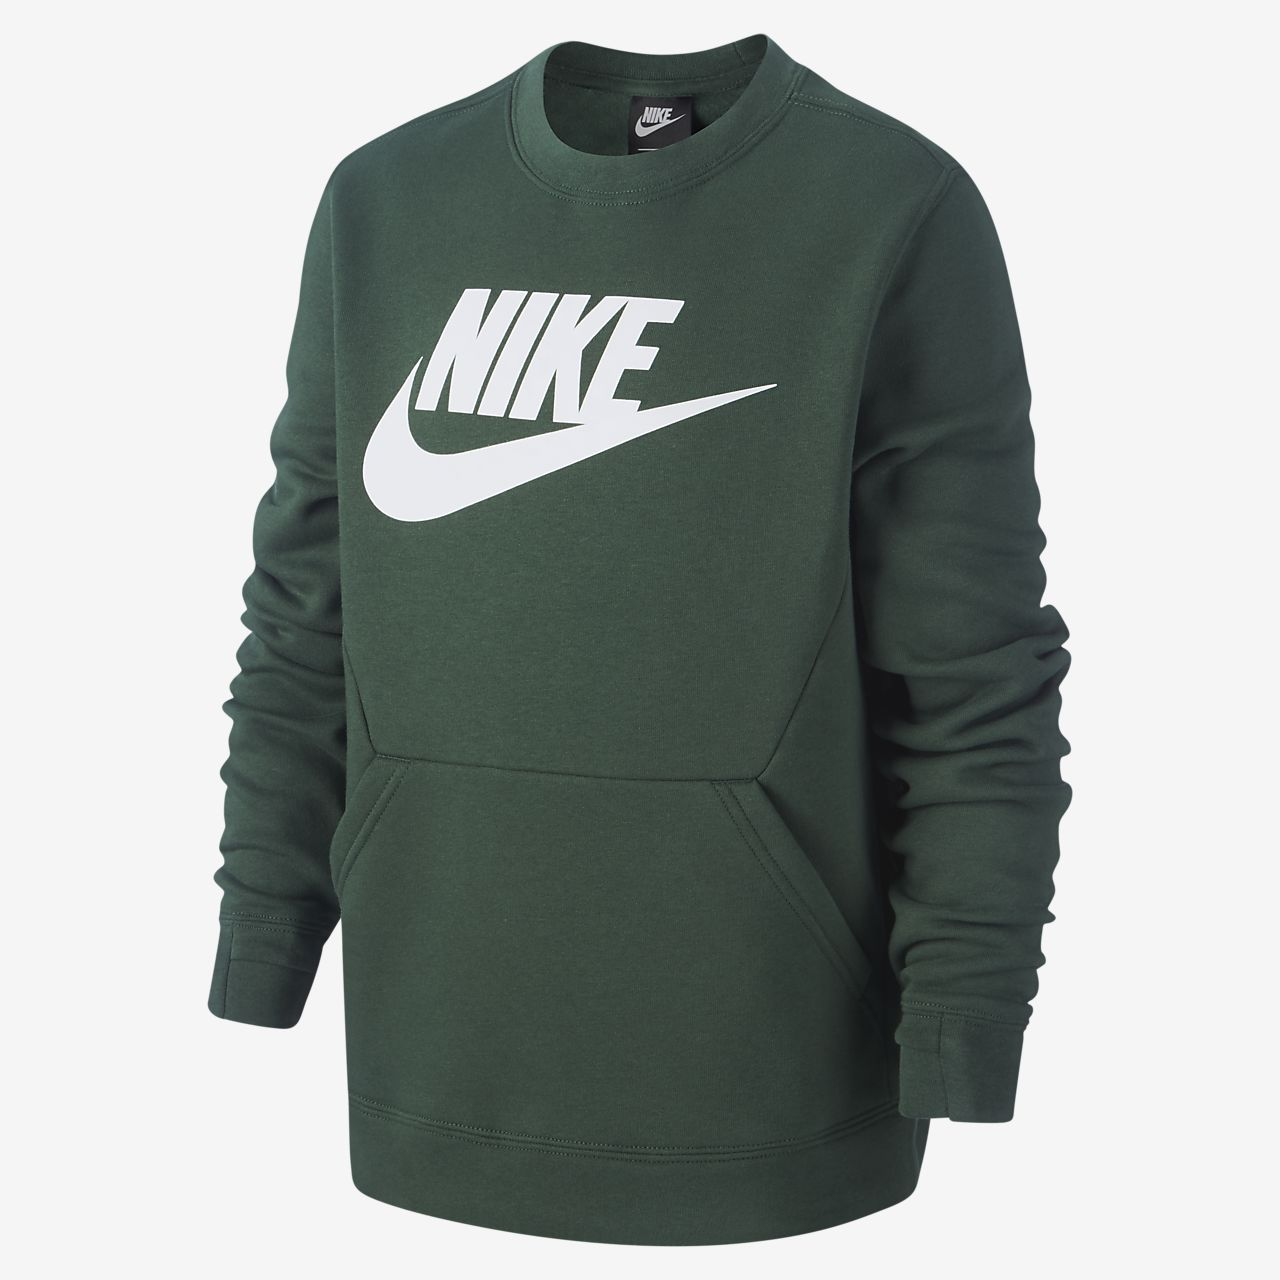 fd9d9d2b929d Nike Sportswear Club Fleece Older Kids  Crew. Nike.com CH